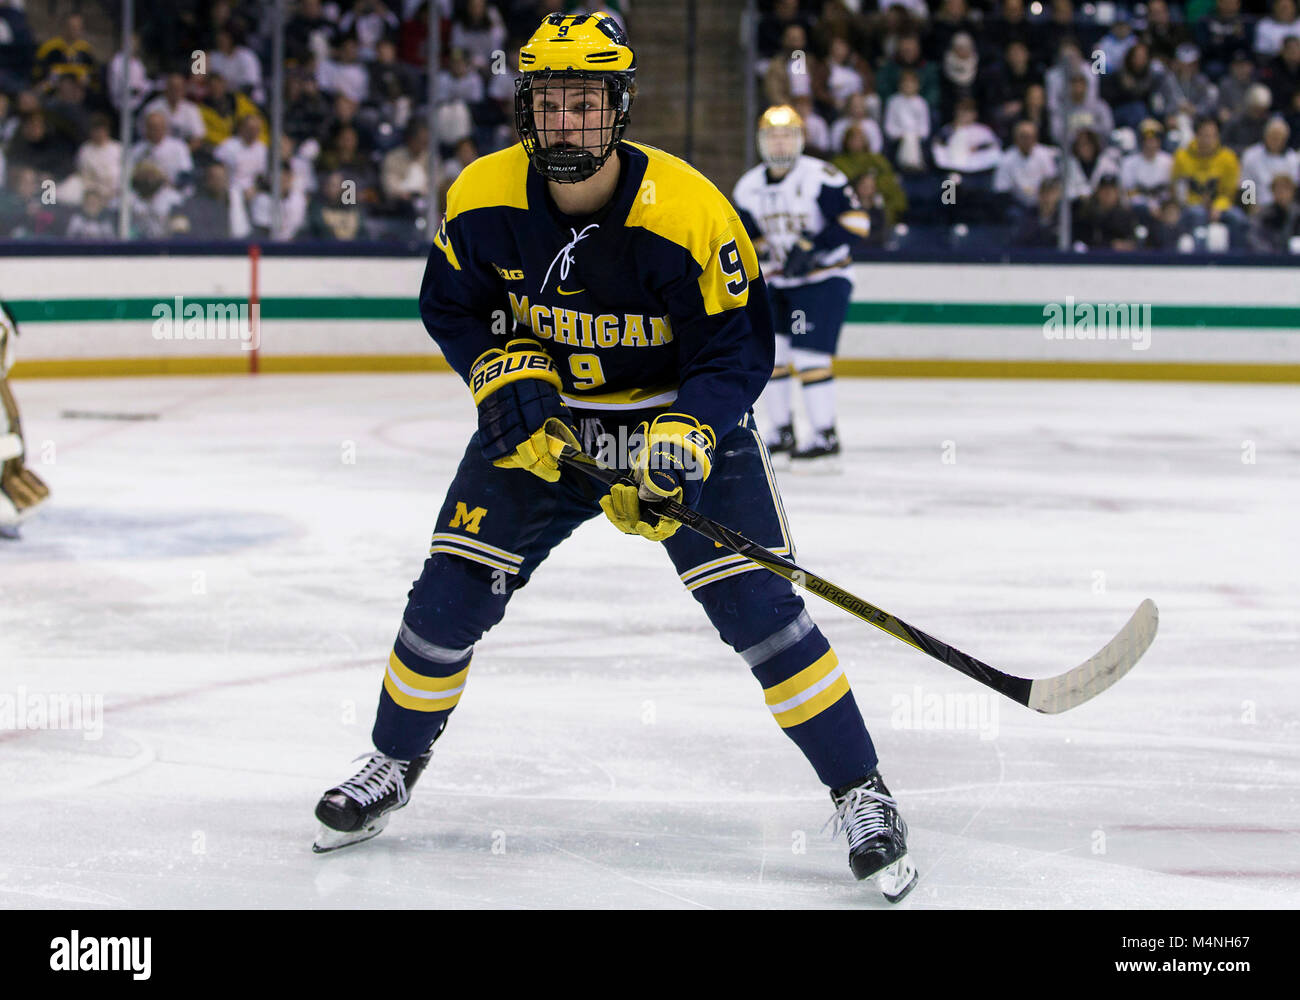 Image result for michigan wolverine hockey 2018